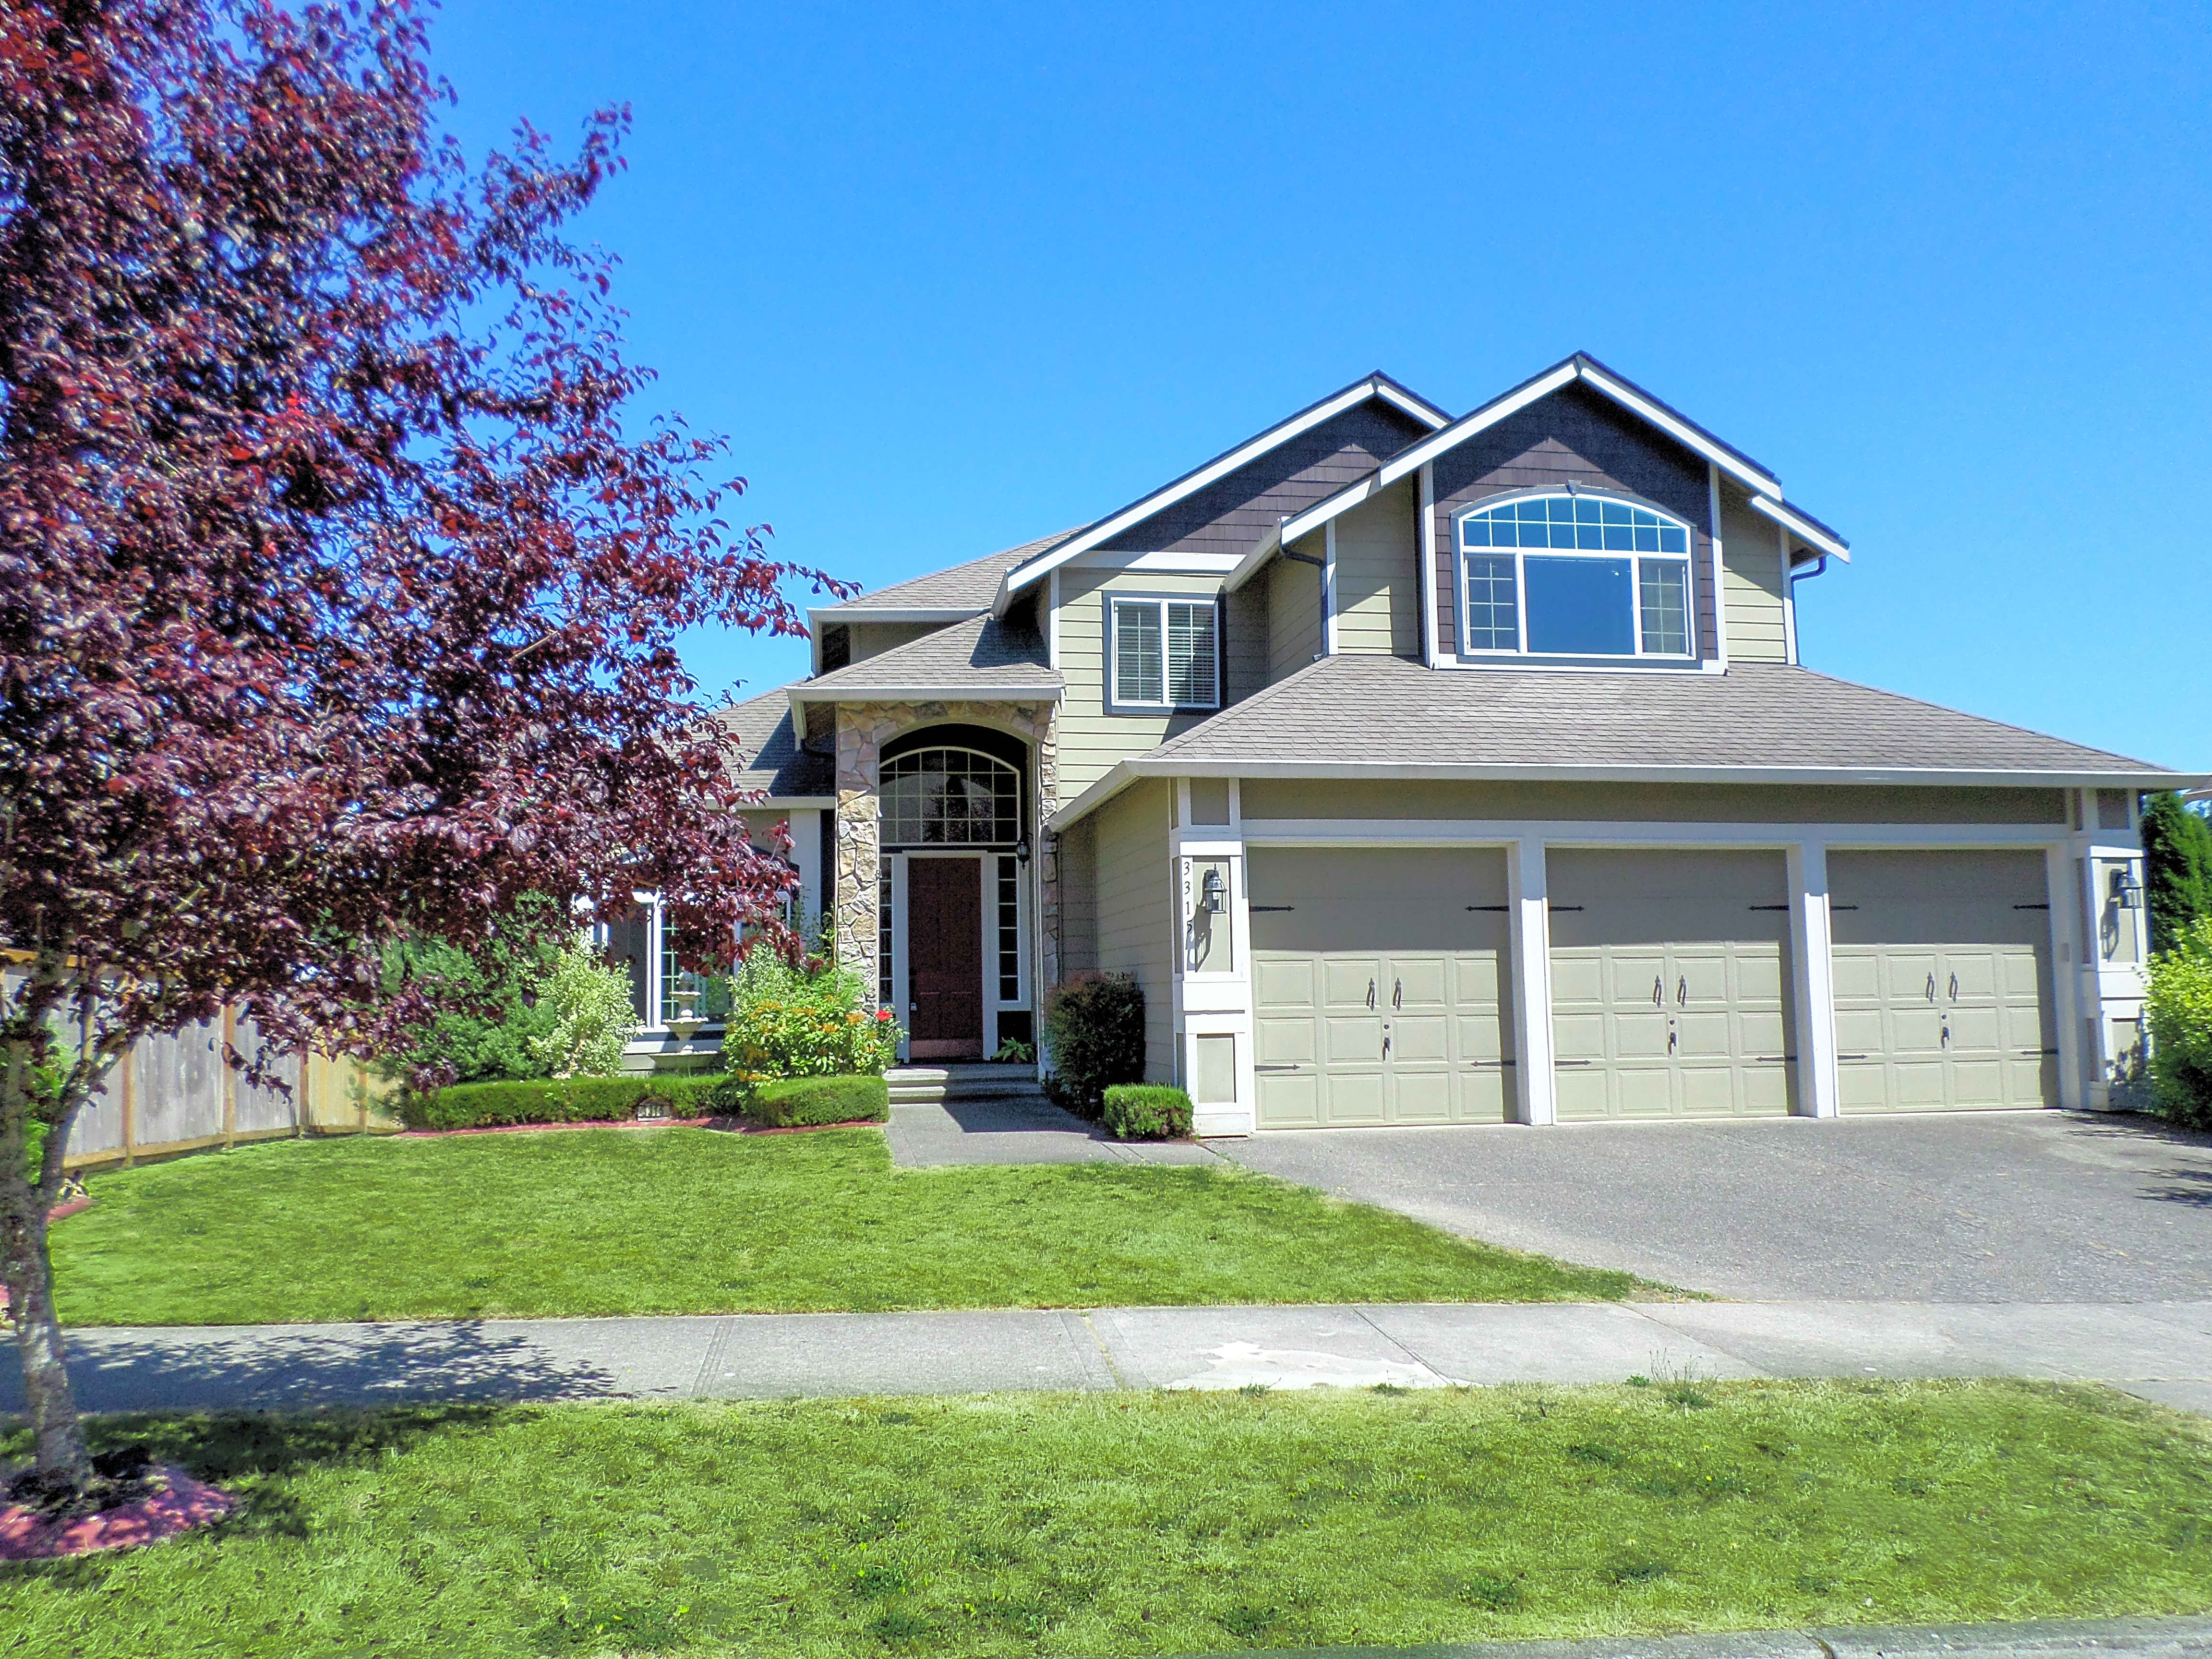 House for Rent in Olympia